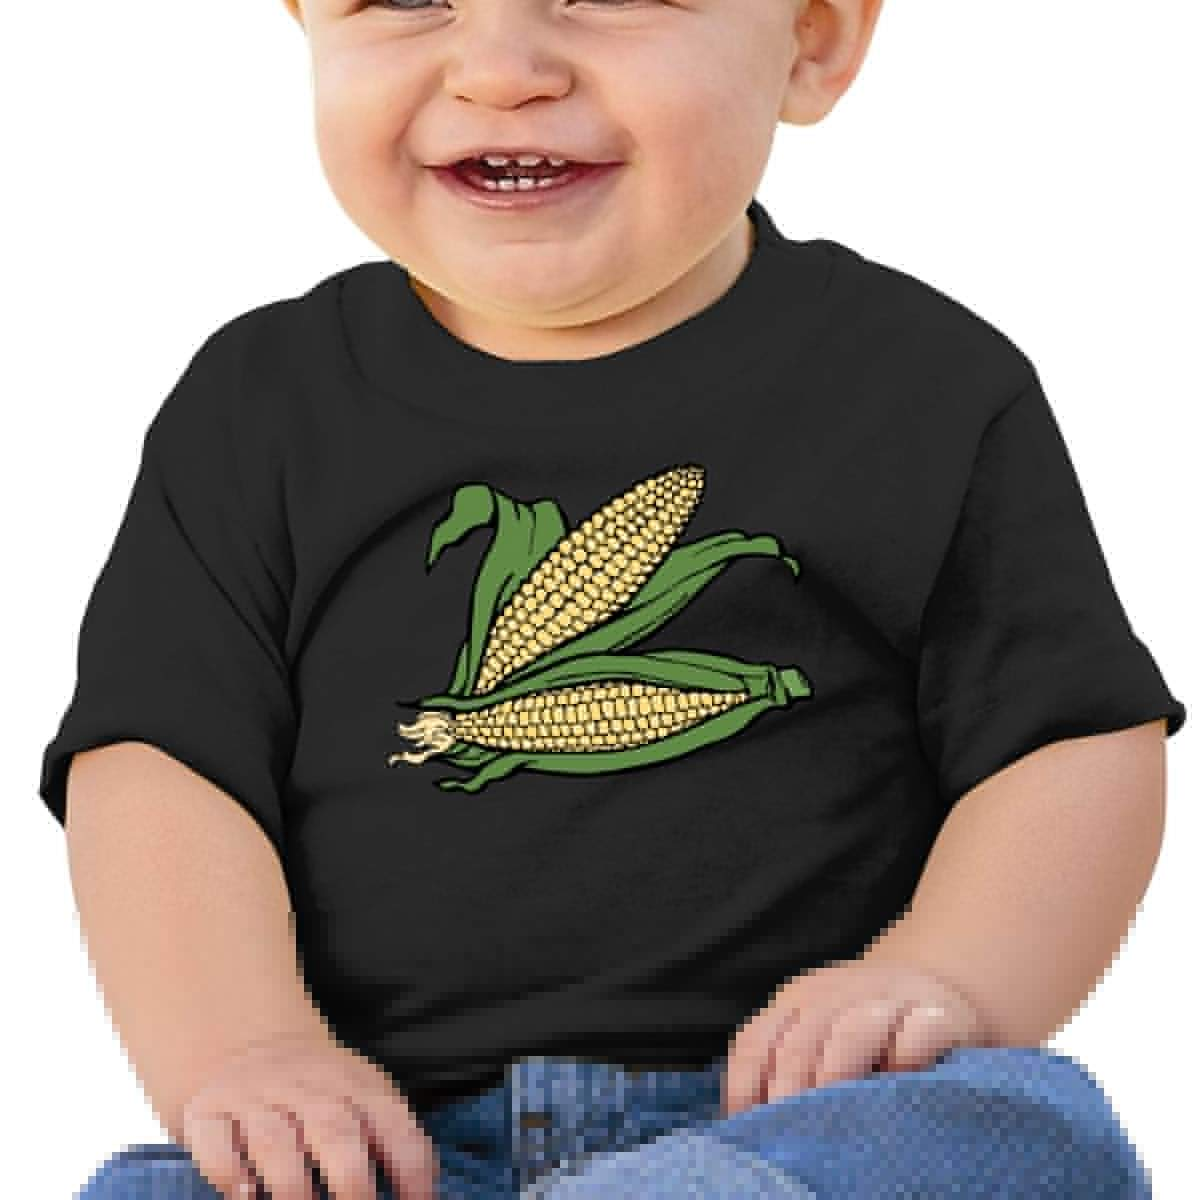 JVNSS Maize Baby T-Shirt Little Baby Cotton T Shirts Crew Neck Clothes for 6M-2T Baby